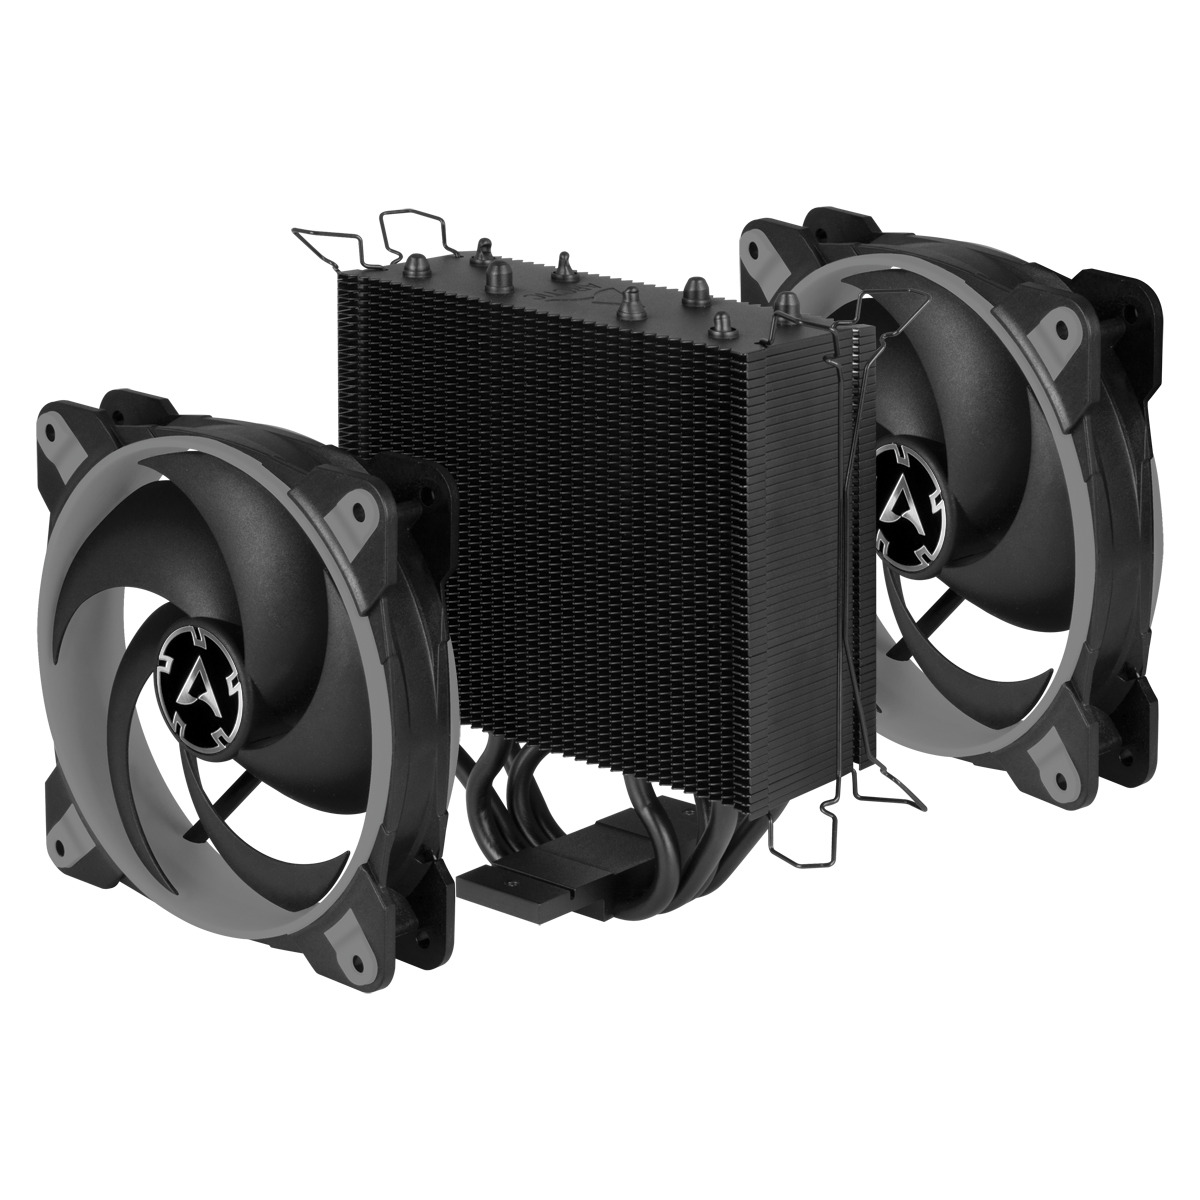 Ψύκτρα CPU Freezer 34 eSports DUO Grey ACFRE00075A (MX-4 0.8gr included) image